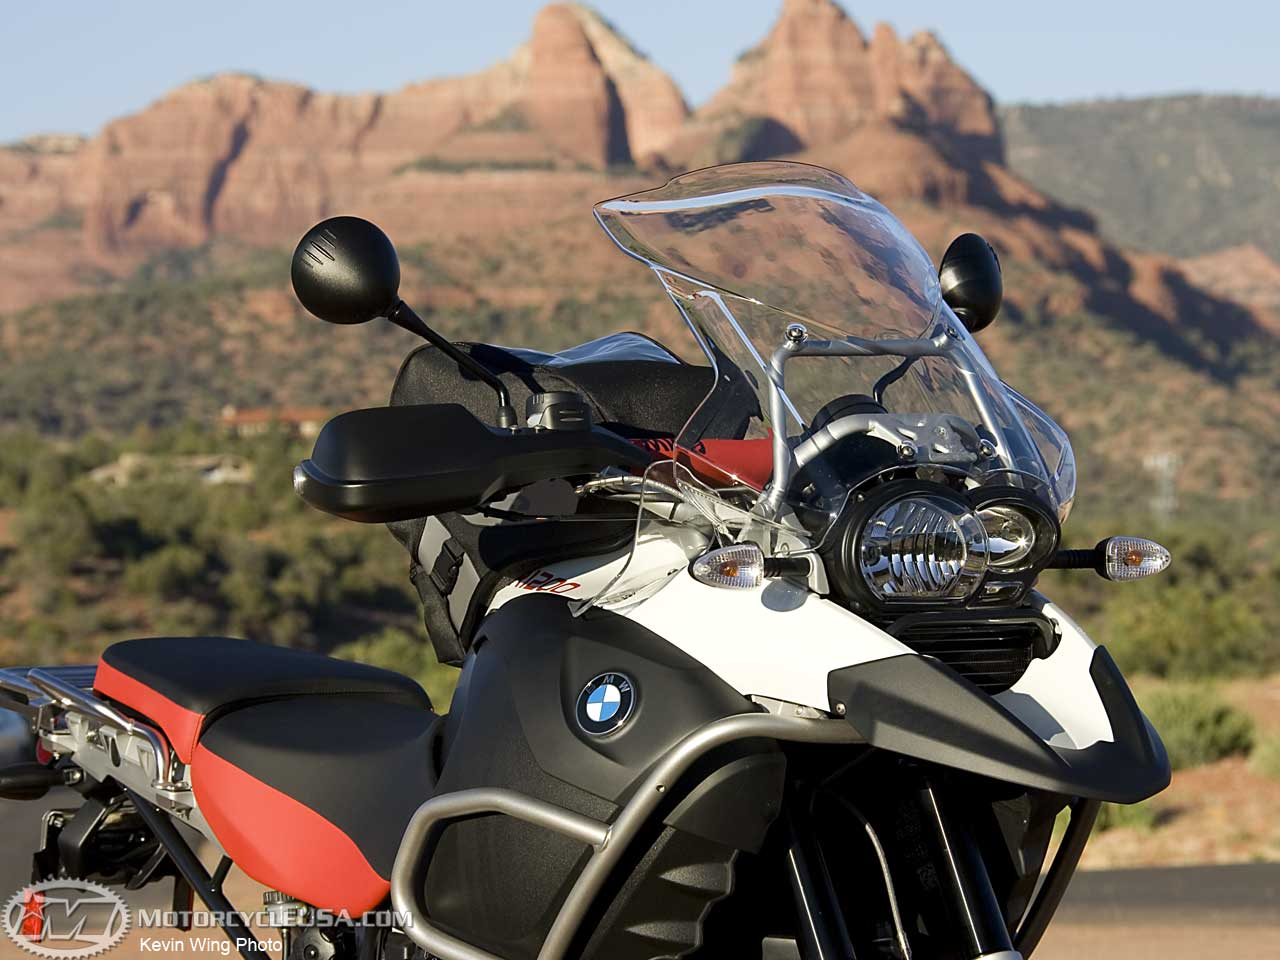 BMW R1200GS 2006 images #77990